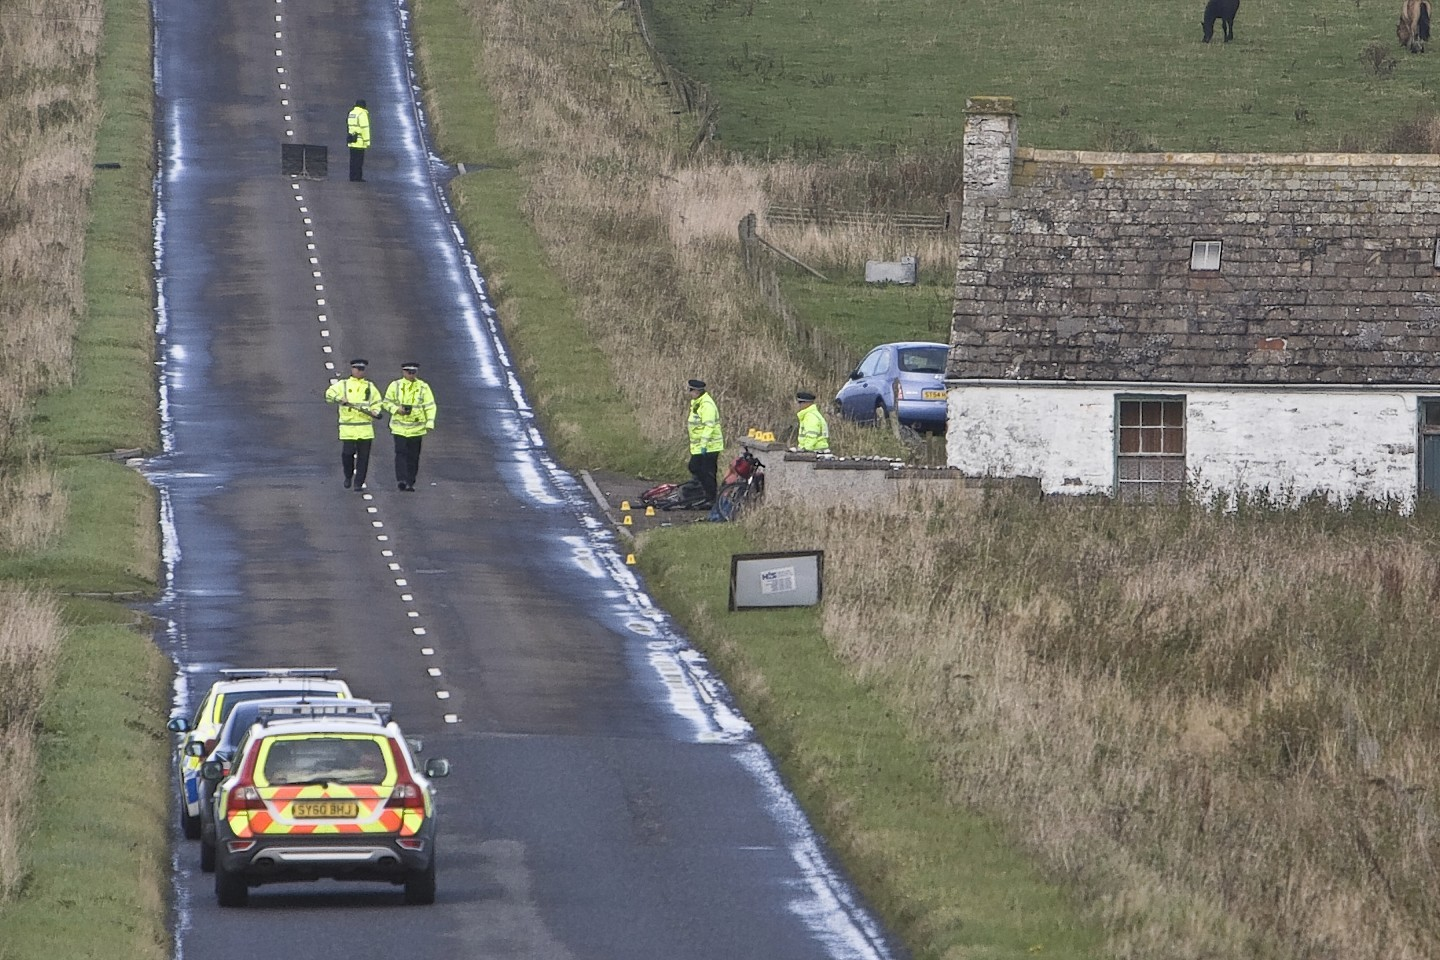 Alice Ross believed there was no-one else involved in the accident at Auckengill, six miles south of John O' Groats.